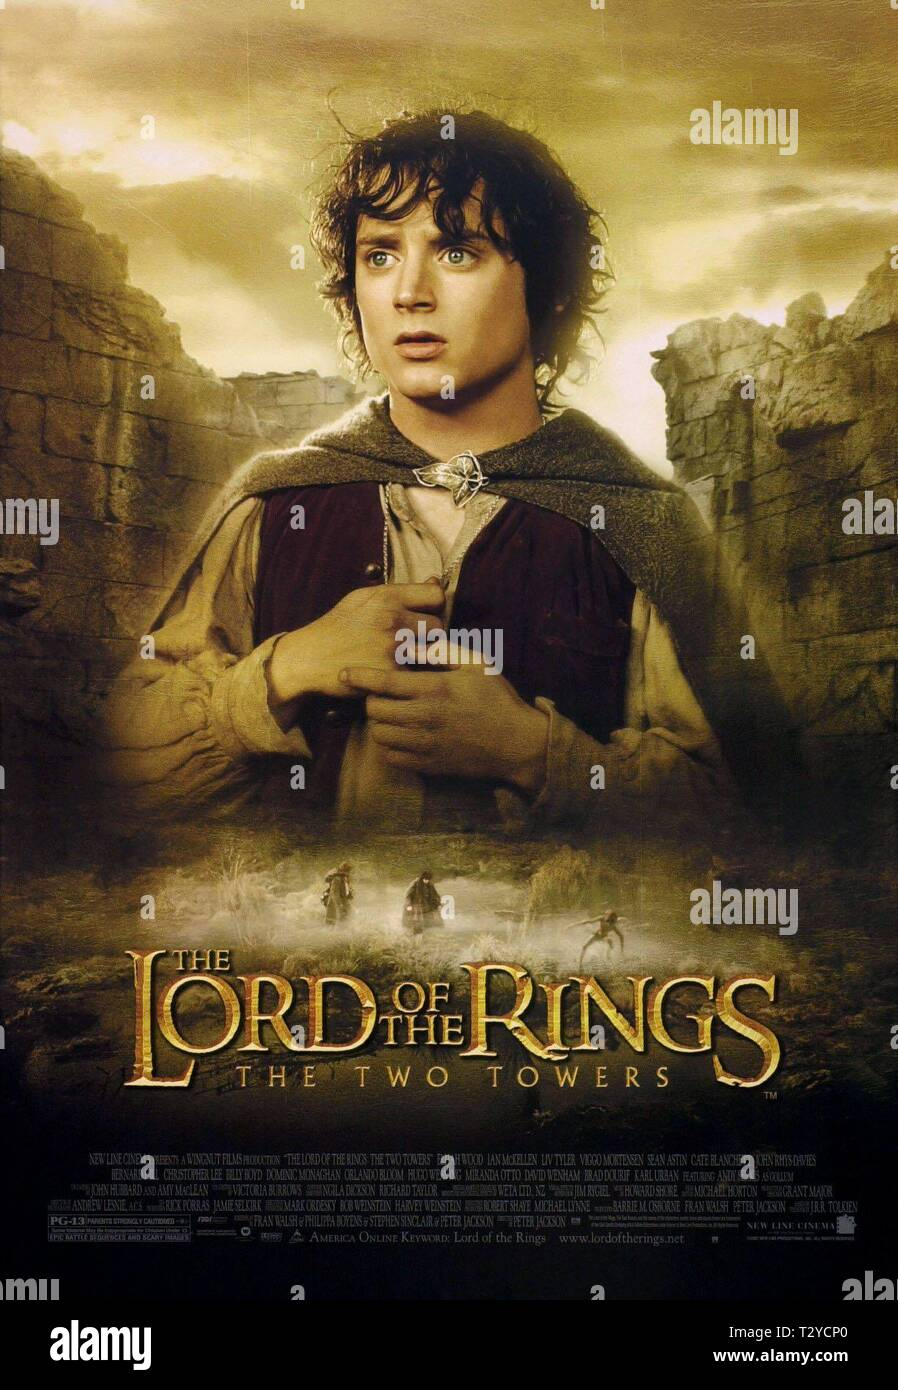 Elijah Wood The Lord Of The Rings The Two Towers 2002 Stock Photo Alamy